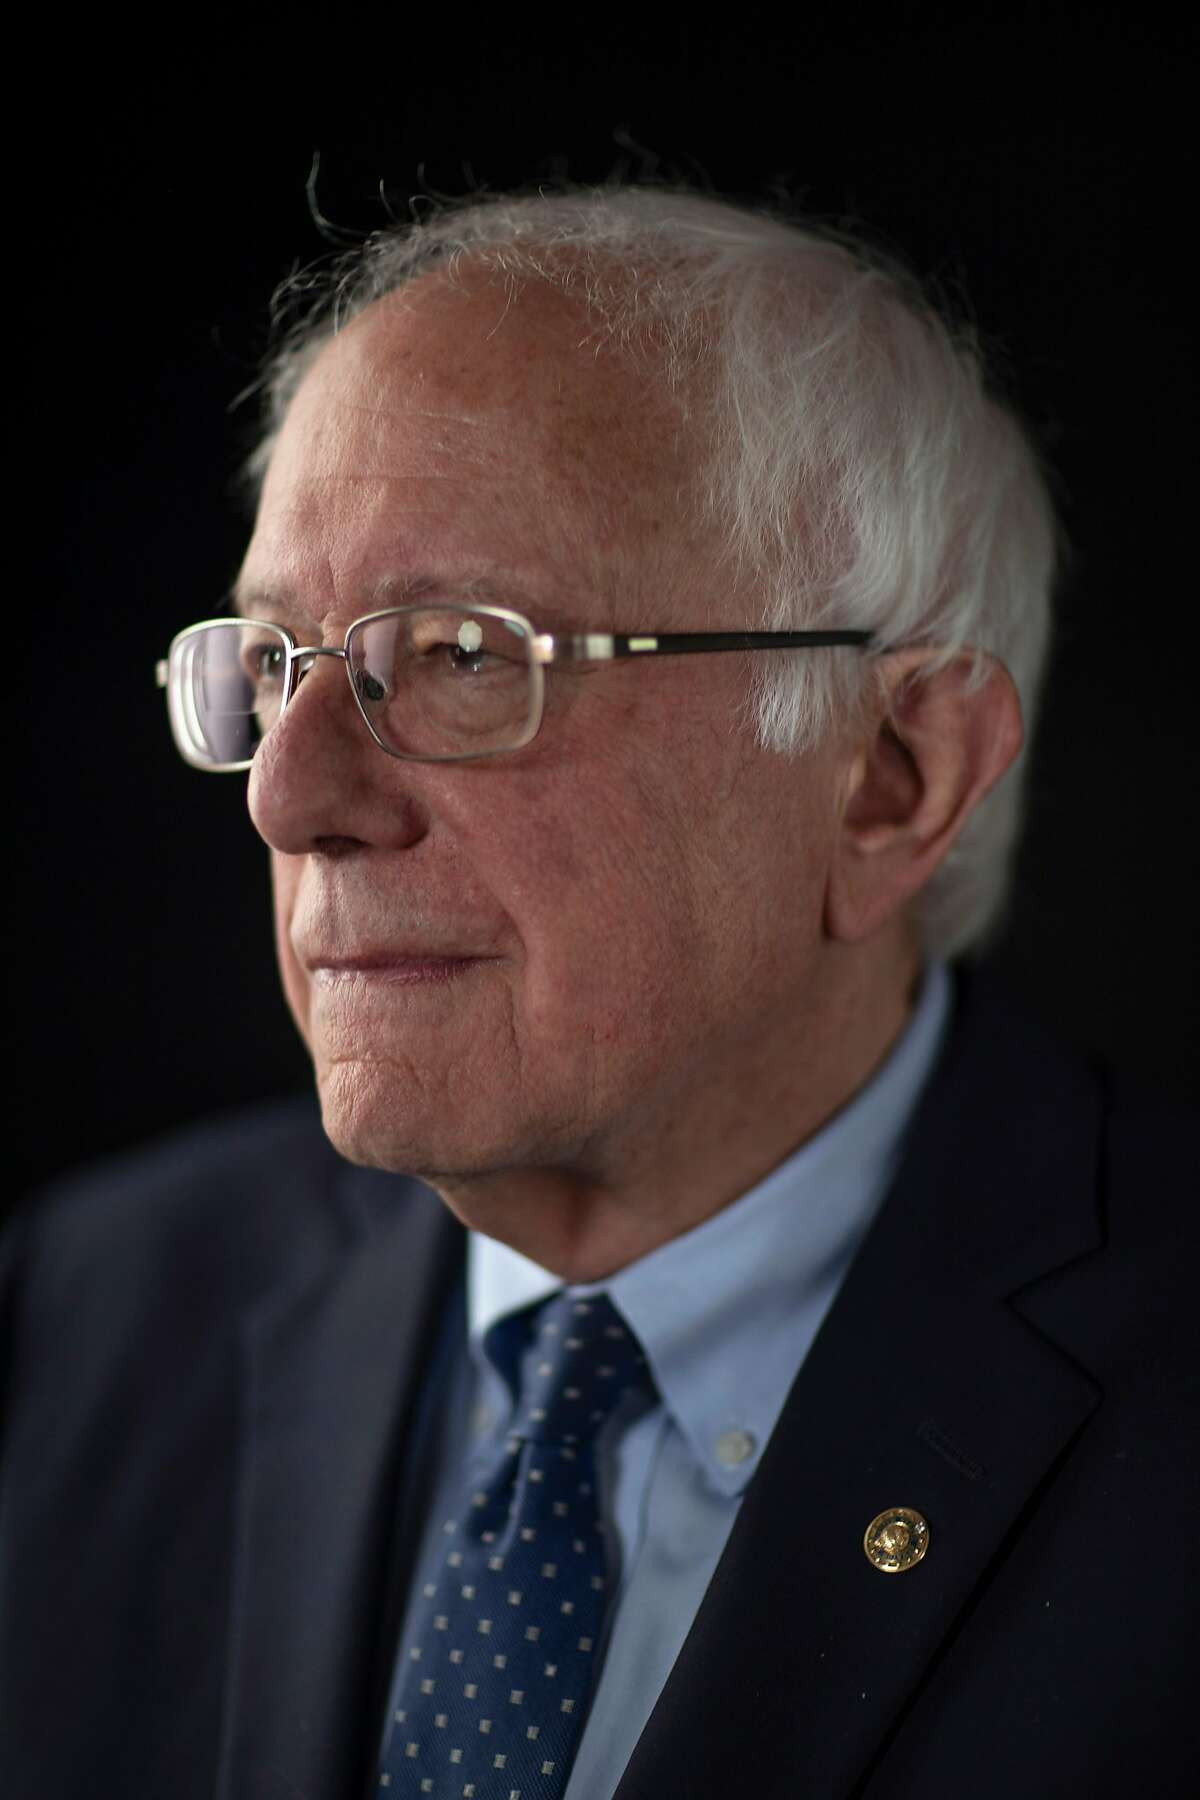 FILE -- Sen. Bernie Sanders (I-Vt.), a candidate for the Democratic presidential nomination, in Cedar Rapids, Iowa, on June 8, 2019. Sanders is being treated for an artery blockage and canceling his events for the coming days, a campaign official said on Wednesday, Oct. 2, 2019. (Tony Cenicola/The New York Times)